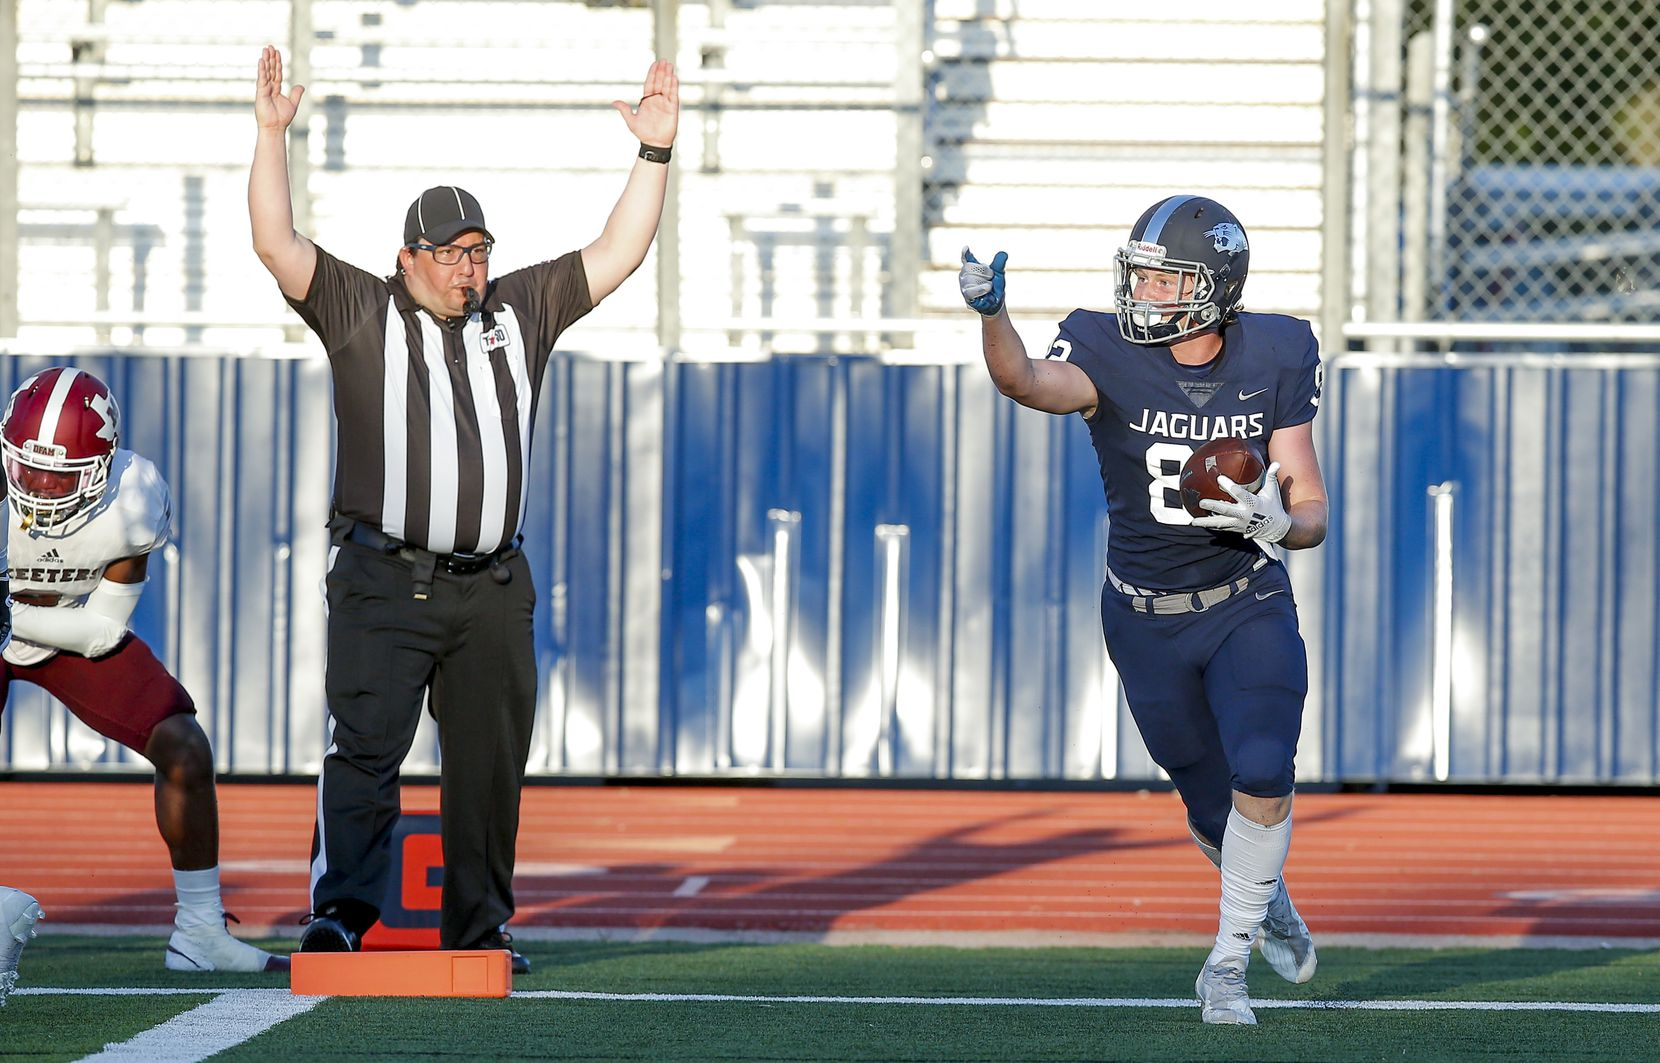 Flower Mound sophomore wide receiver Jason Welch (82) celebrates scoring a touchdown during the first half of a high school football game against Mesquite at Flower Mound High School, Friday, August 27, 2021. (Brandon Wade/Special Contributor)